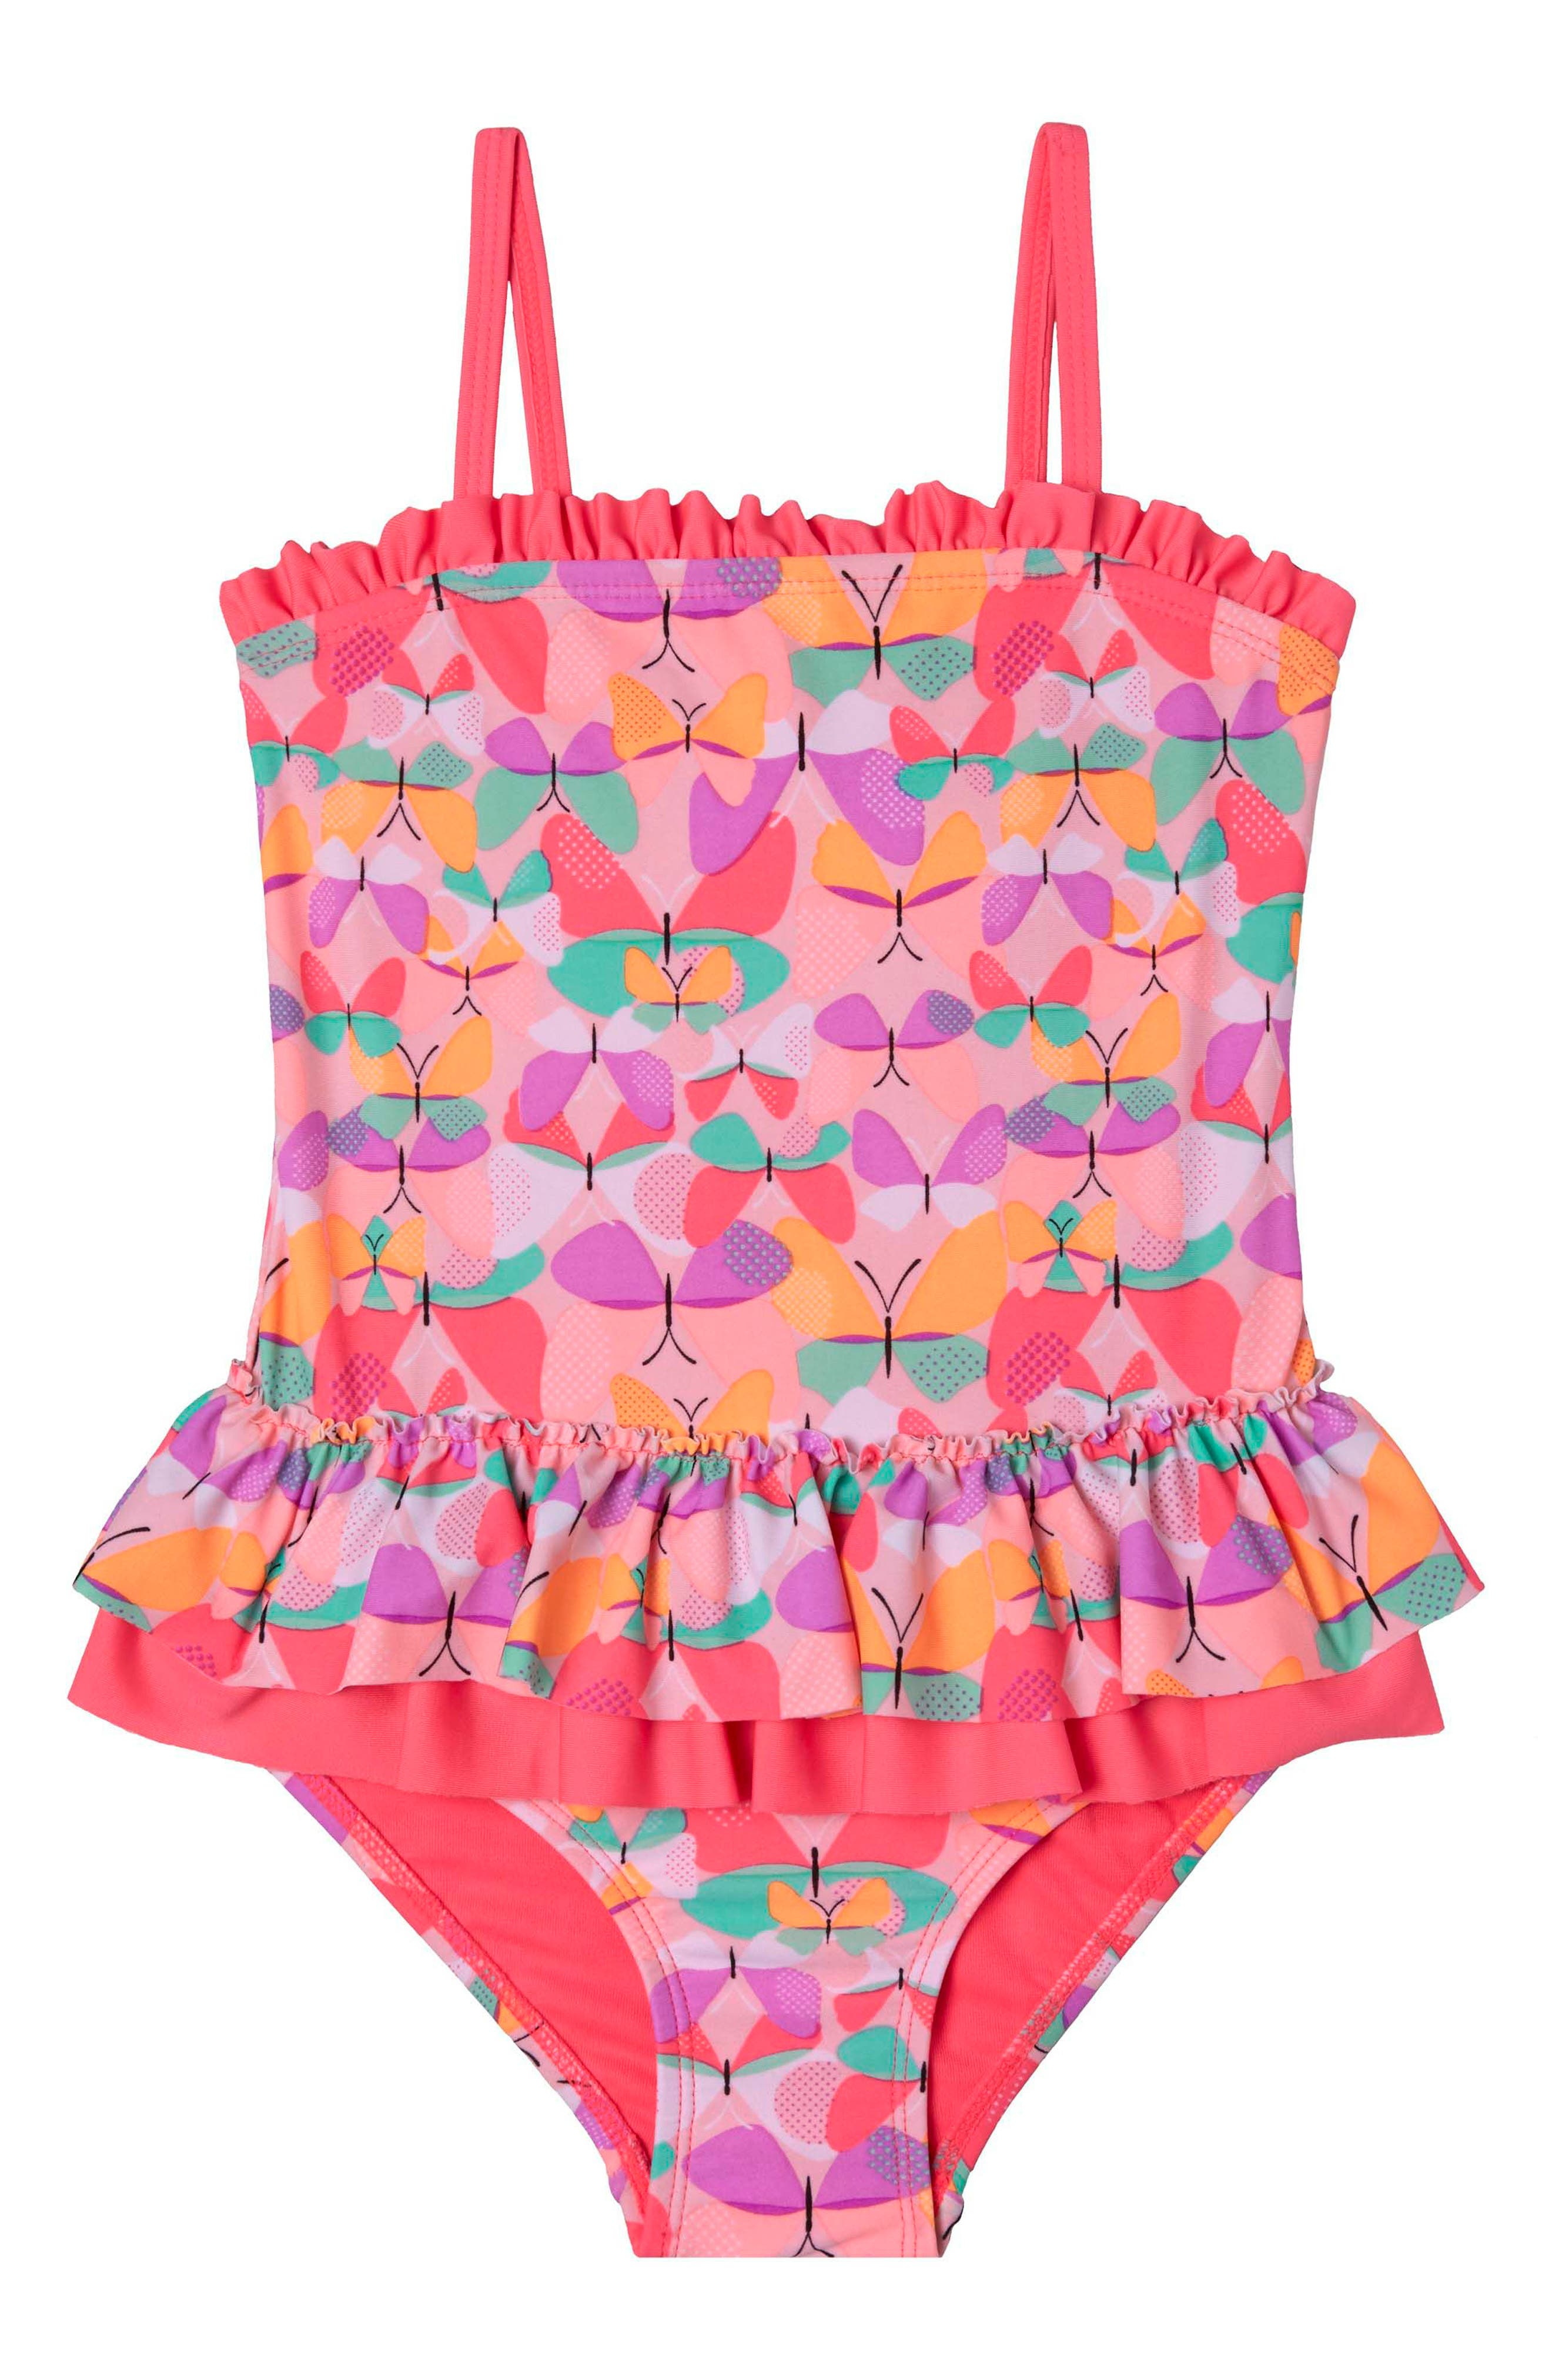 Butterfly Cutie One-Piece Swimsuit,                             Main thumbnail 1, color,                             Pink